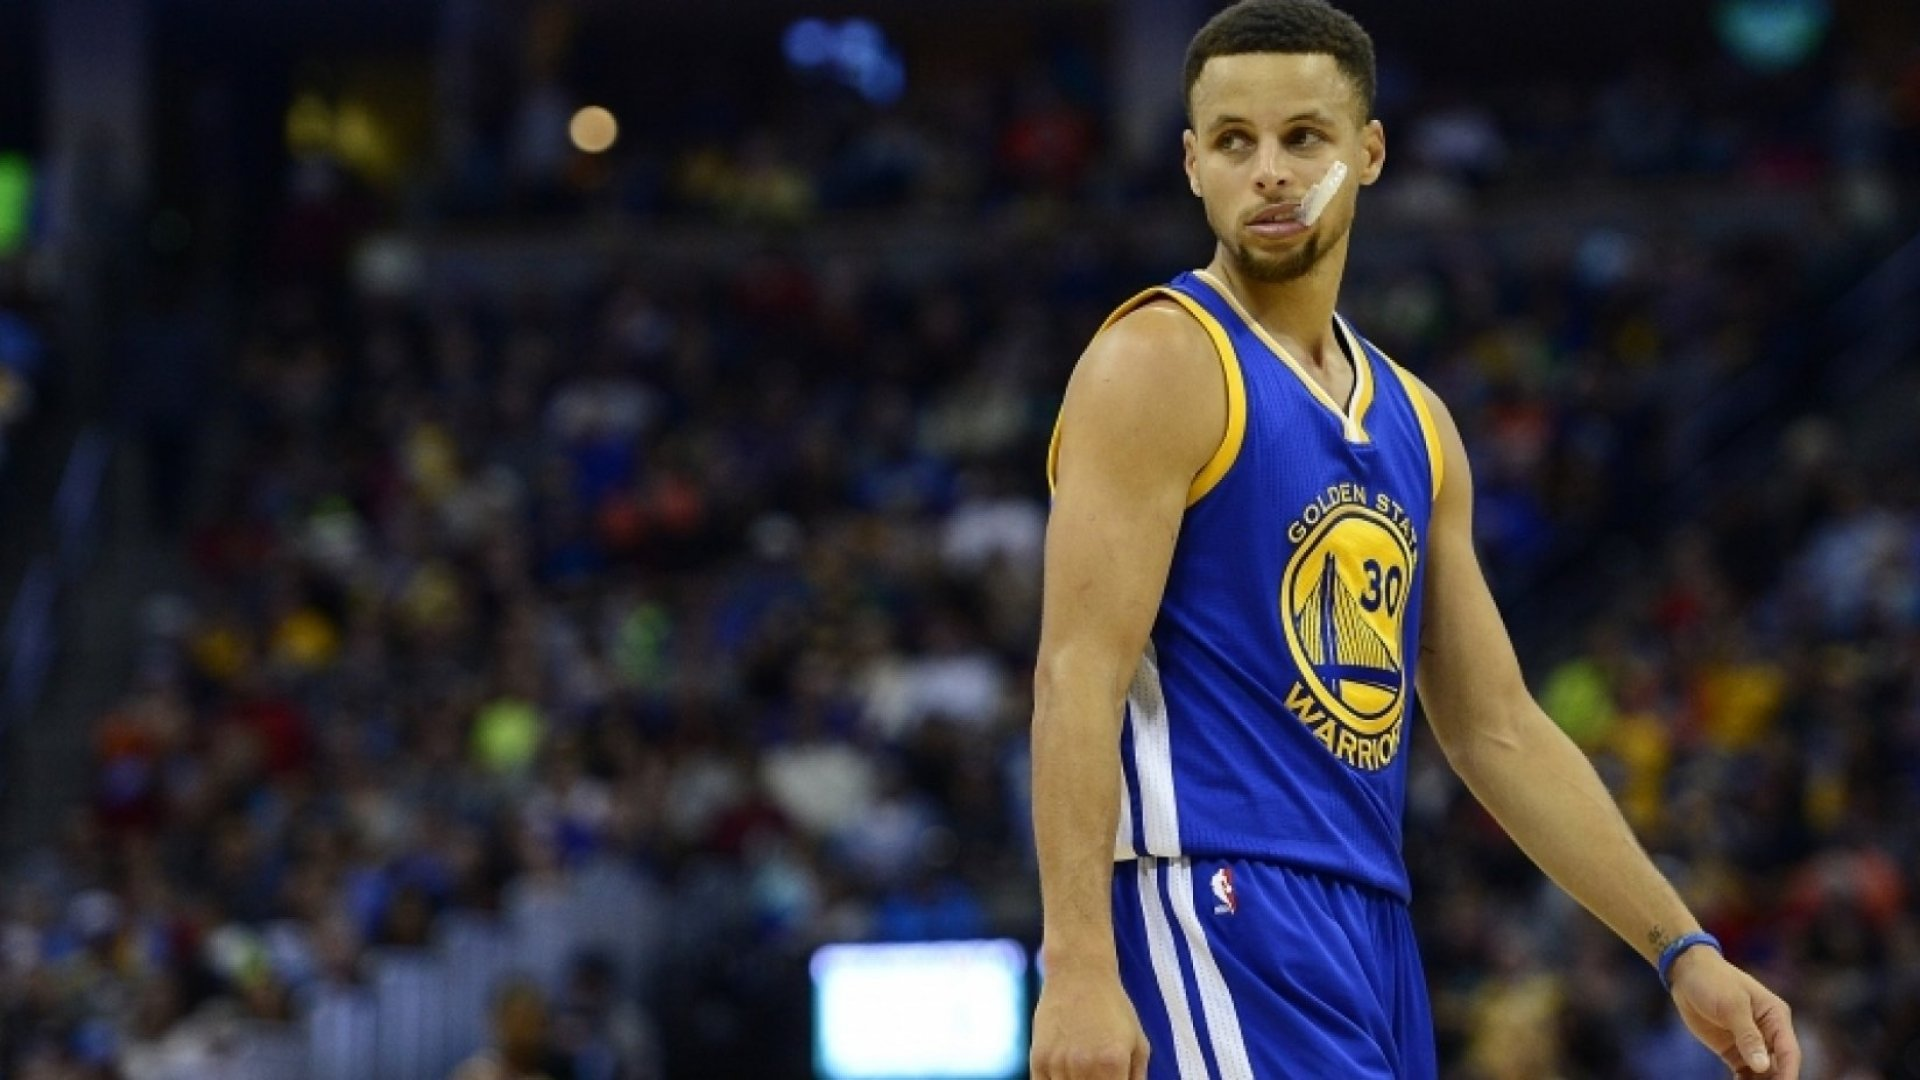 Top 10 Athletes Most Relevant to Millennials (and Why Golden State Warriors' Stephen Curry Is Still Number 1)